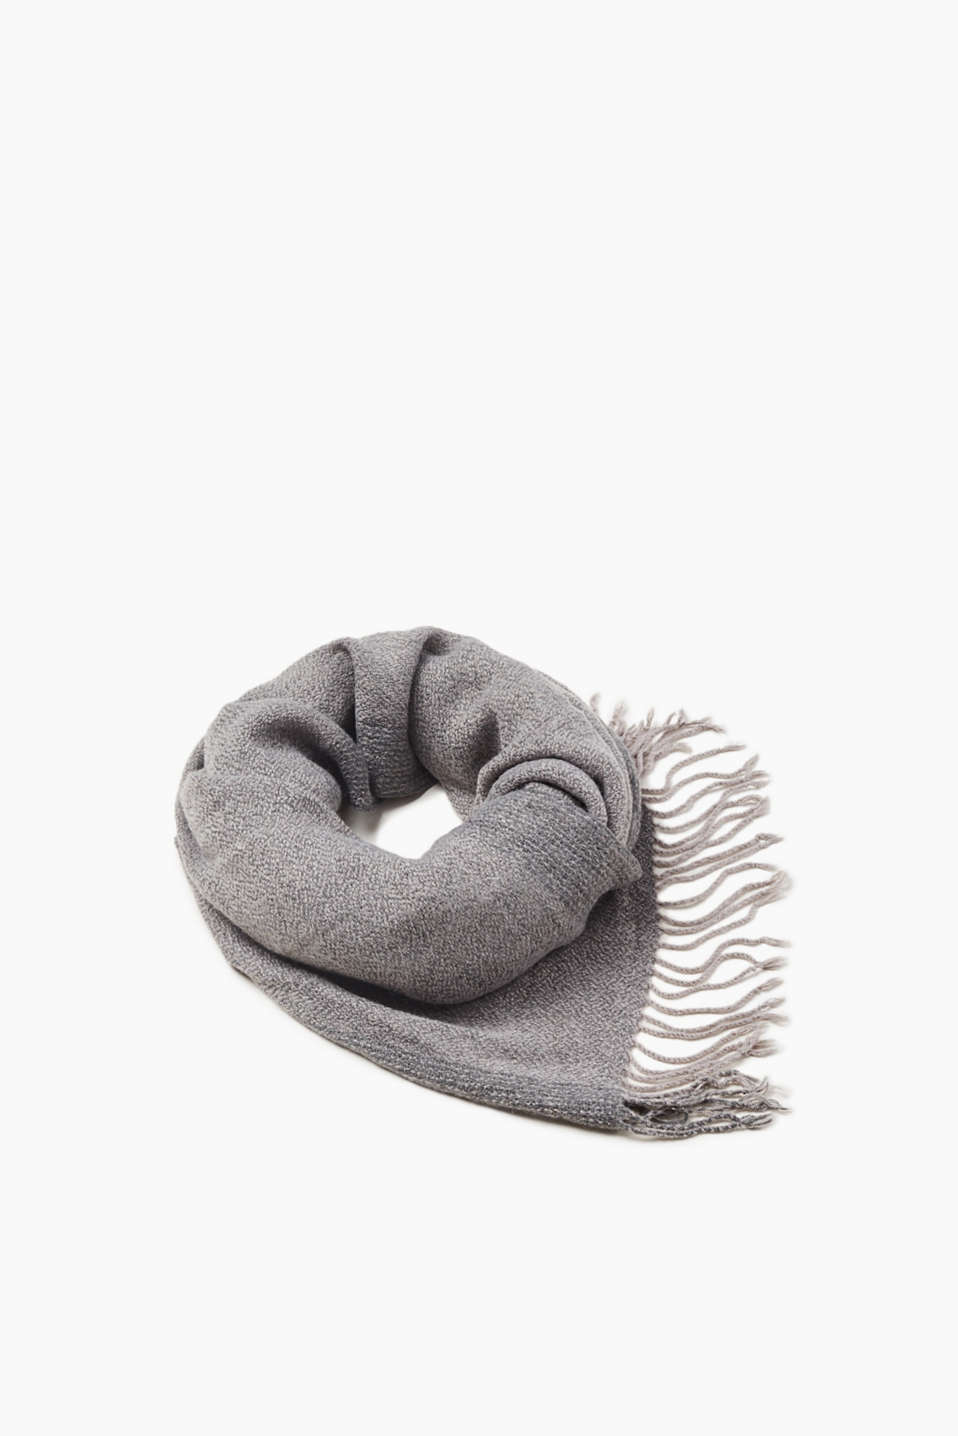 Your stylish favourite for the colder months! This finely textured scarf feels as soft as it looks.